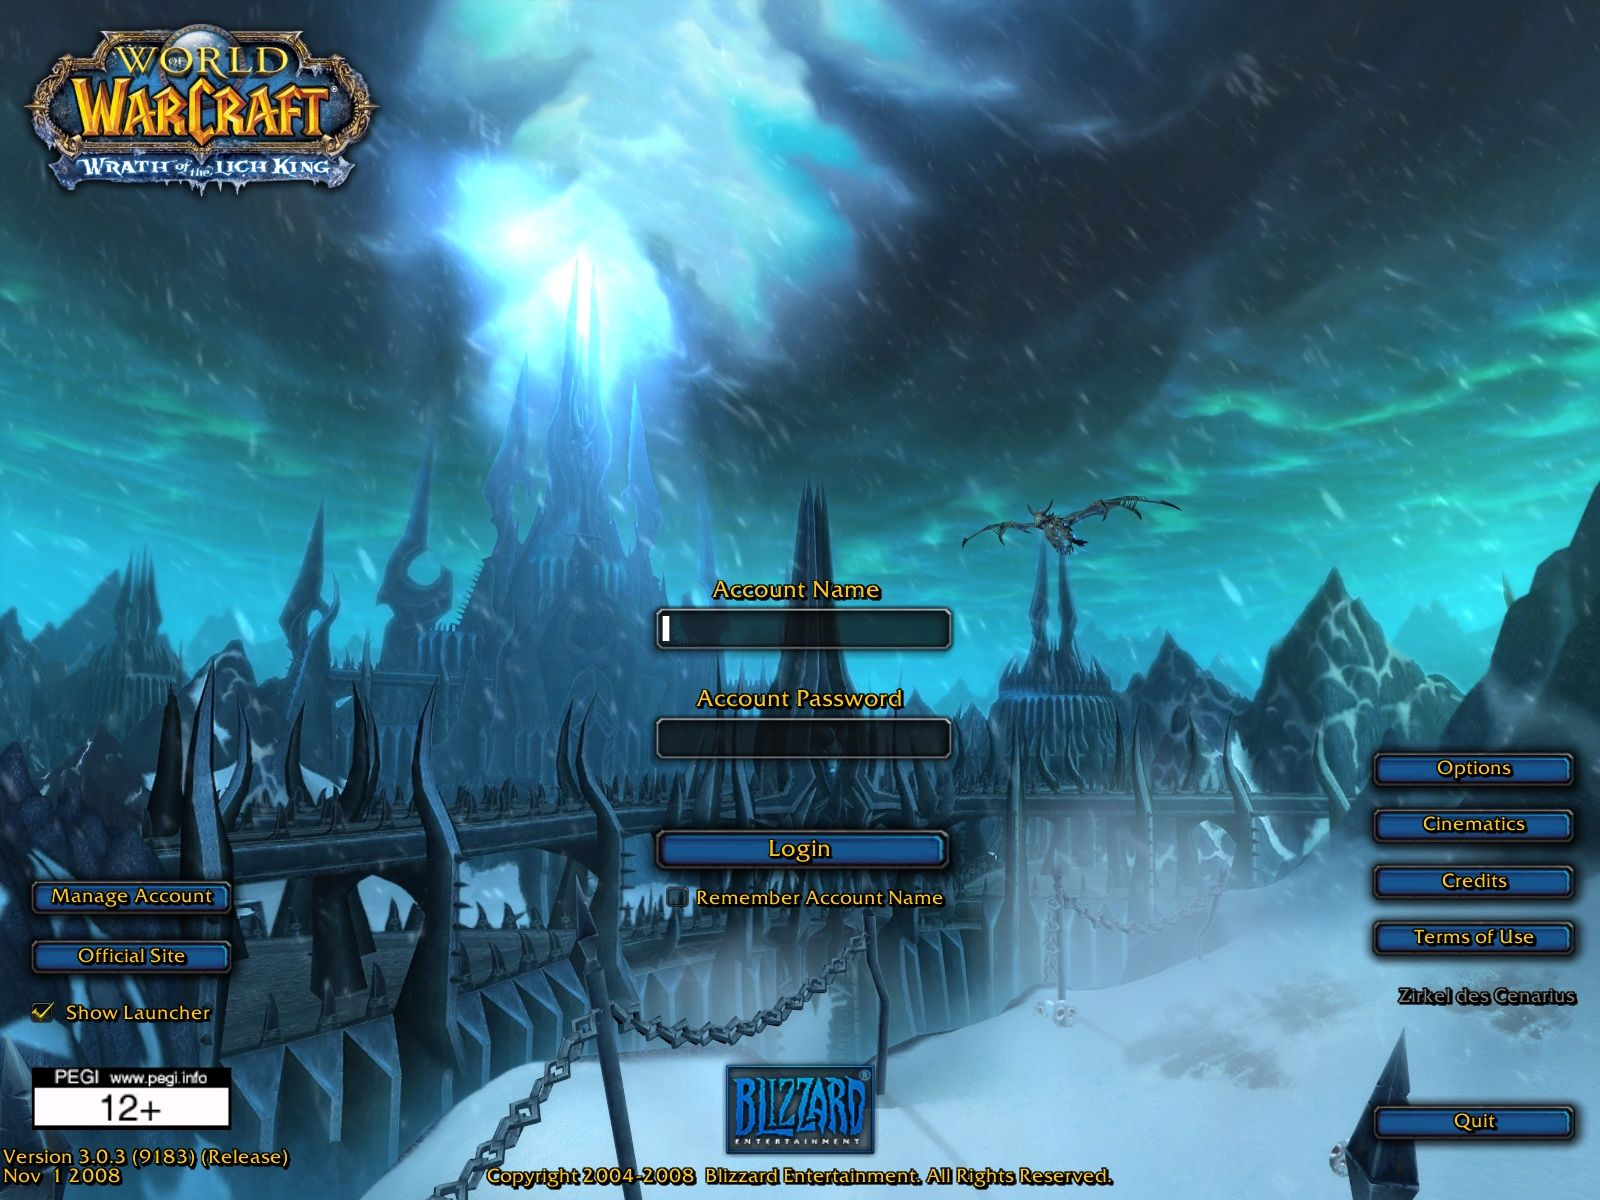 World of Warcraft: Wrath of the Lich King Windows Login screen